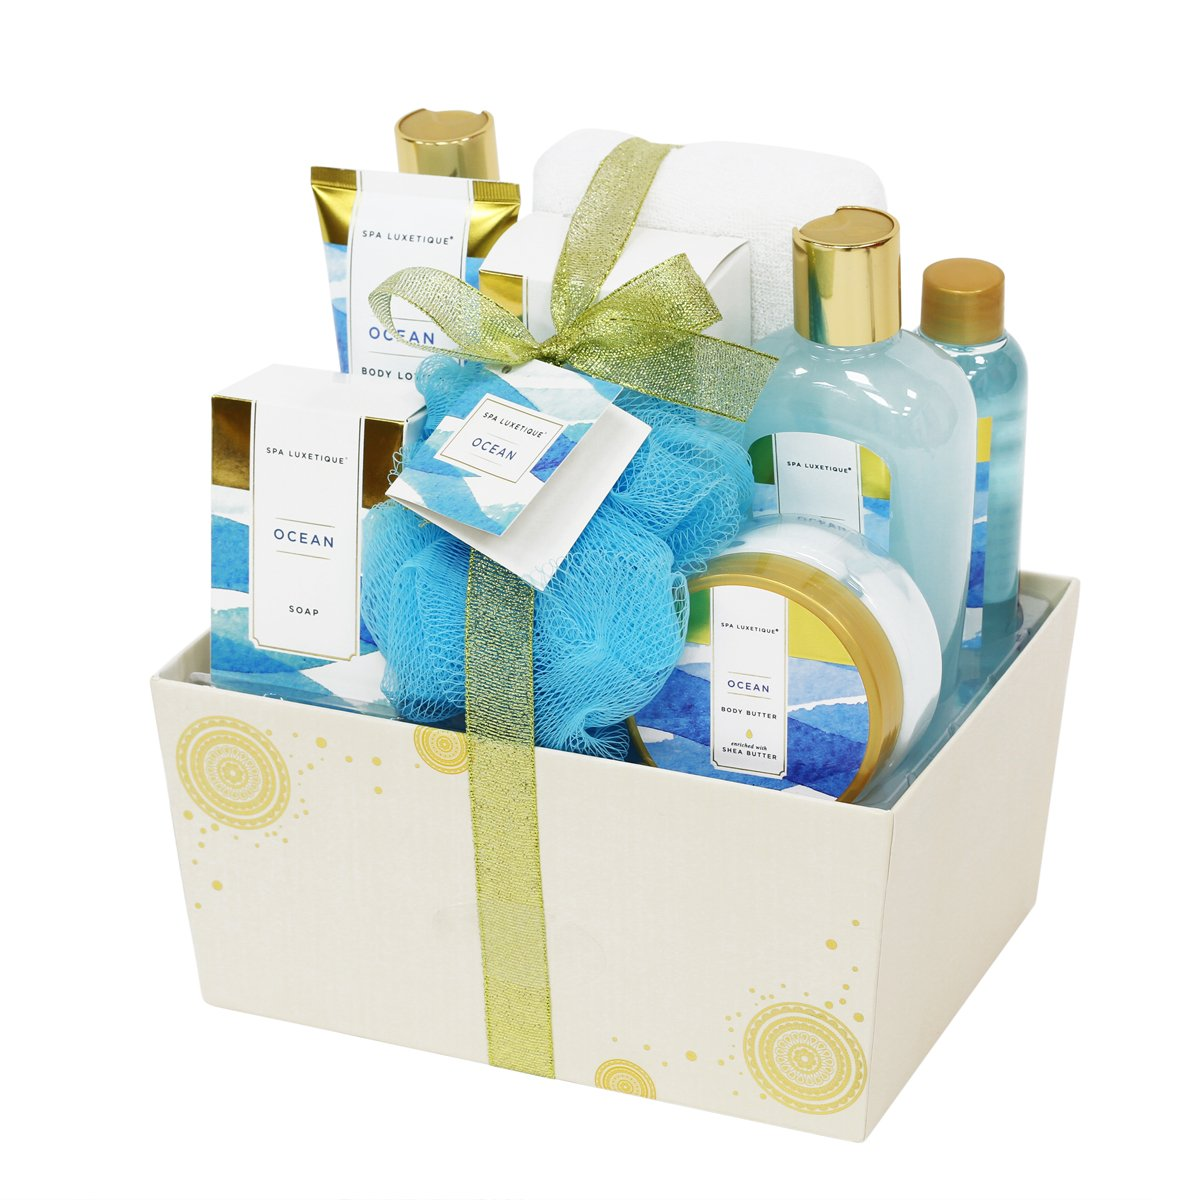 Spa Luxetique Ocean Bath Gift Set for Her, 8pc Premium Spa Gift Set for Women, Decorative Box with Ribbon, Spa Gift Basket for Christmas, Birthday, Mother's Day, Valentine's Day, Thank You Gift